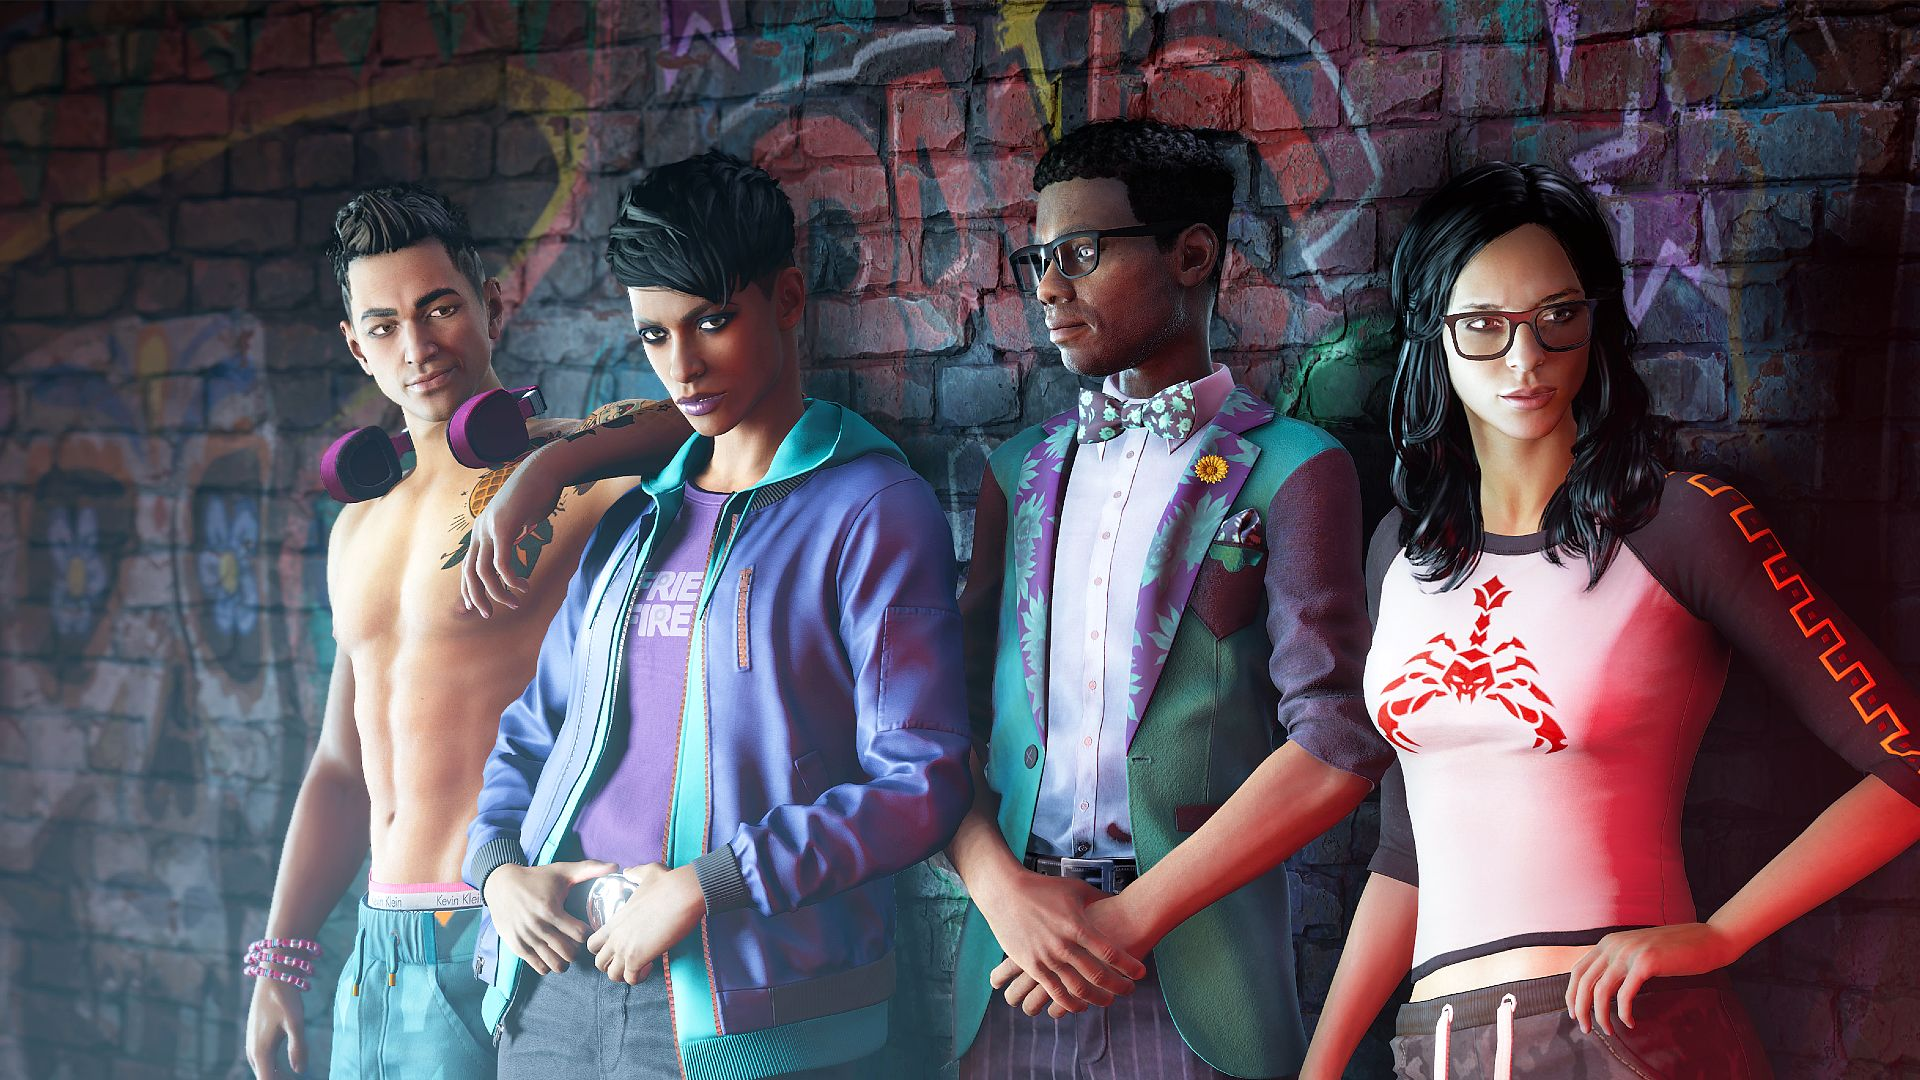 Saints Row's new tone aims to deal with the struggles of modern life